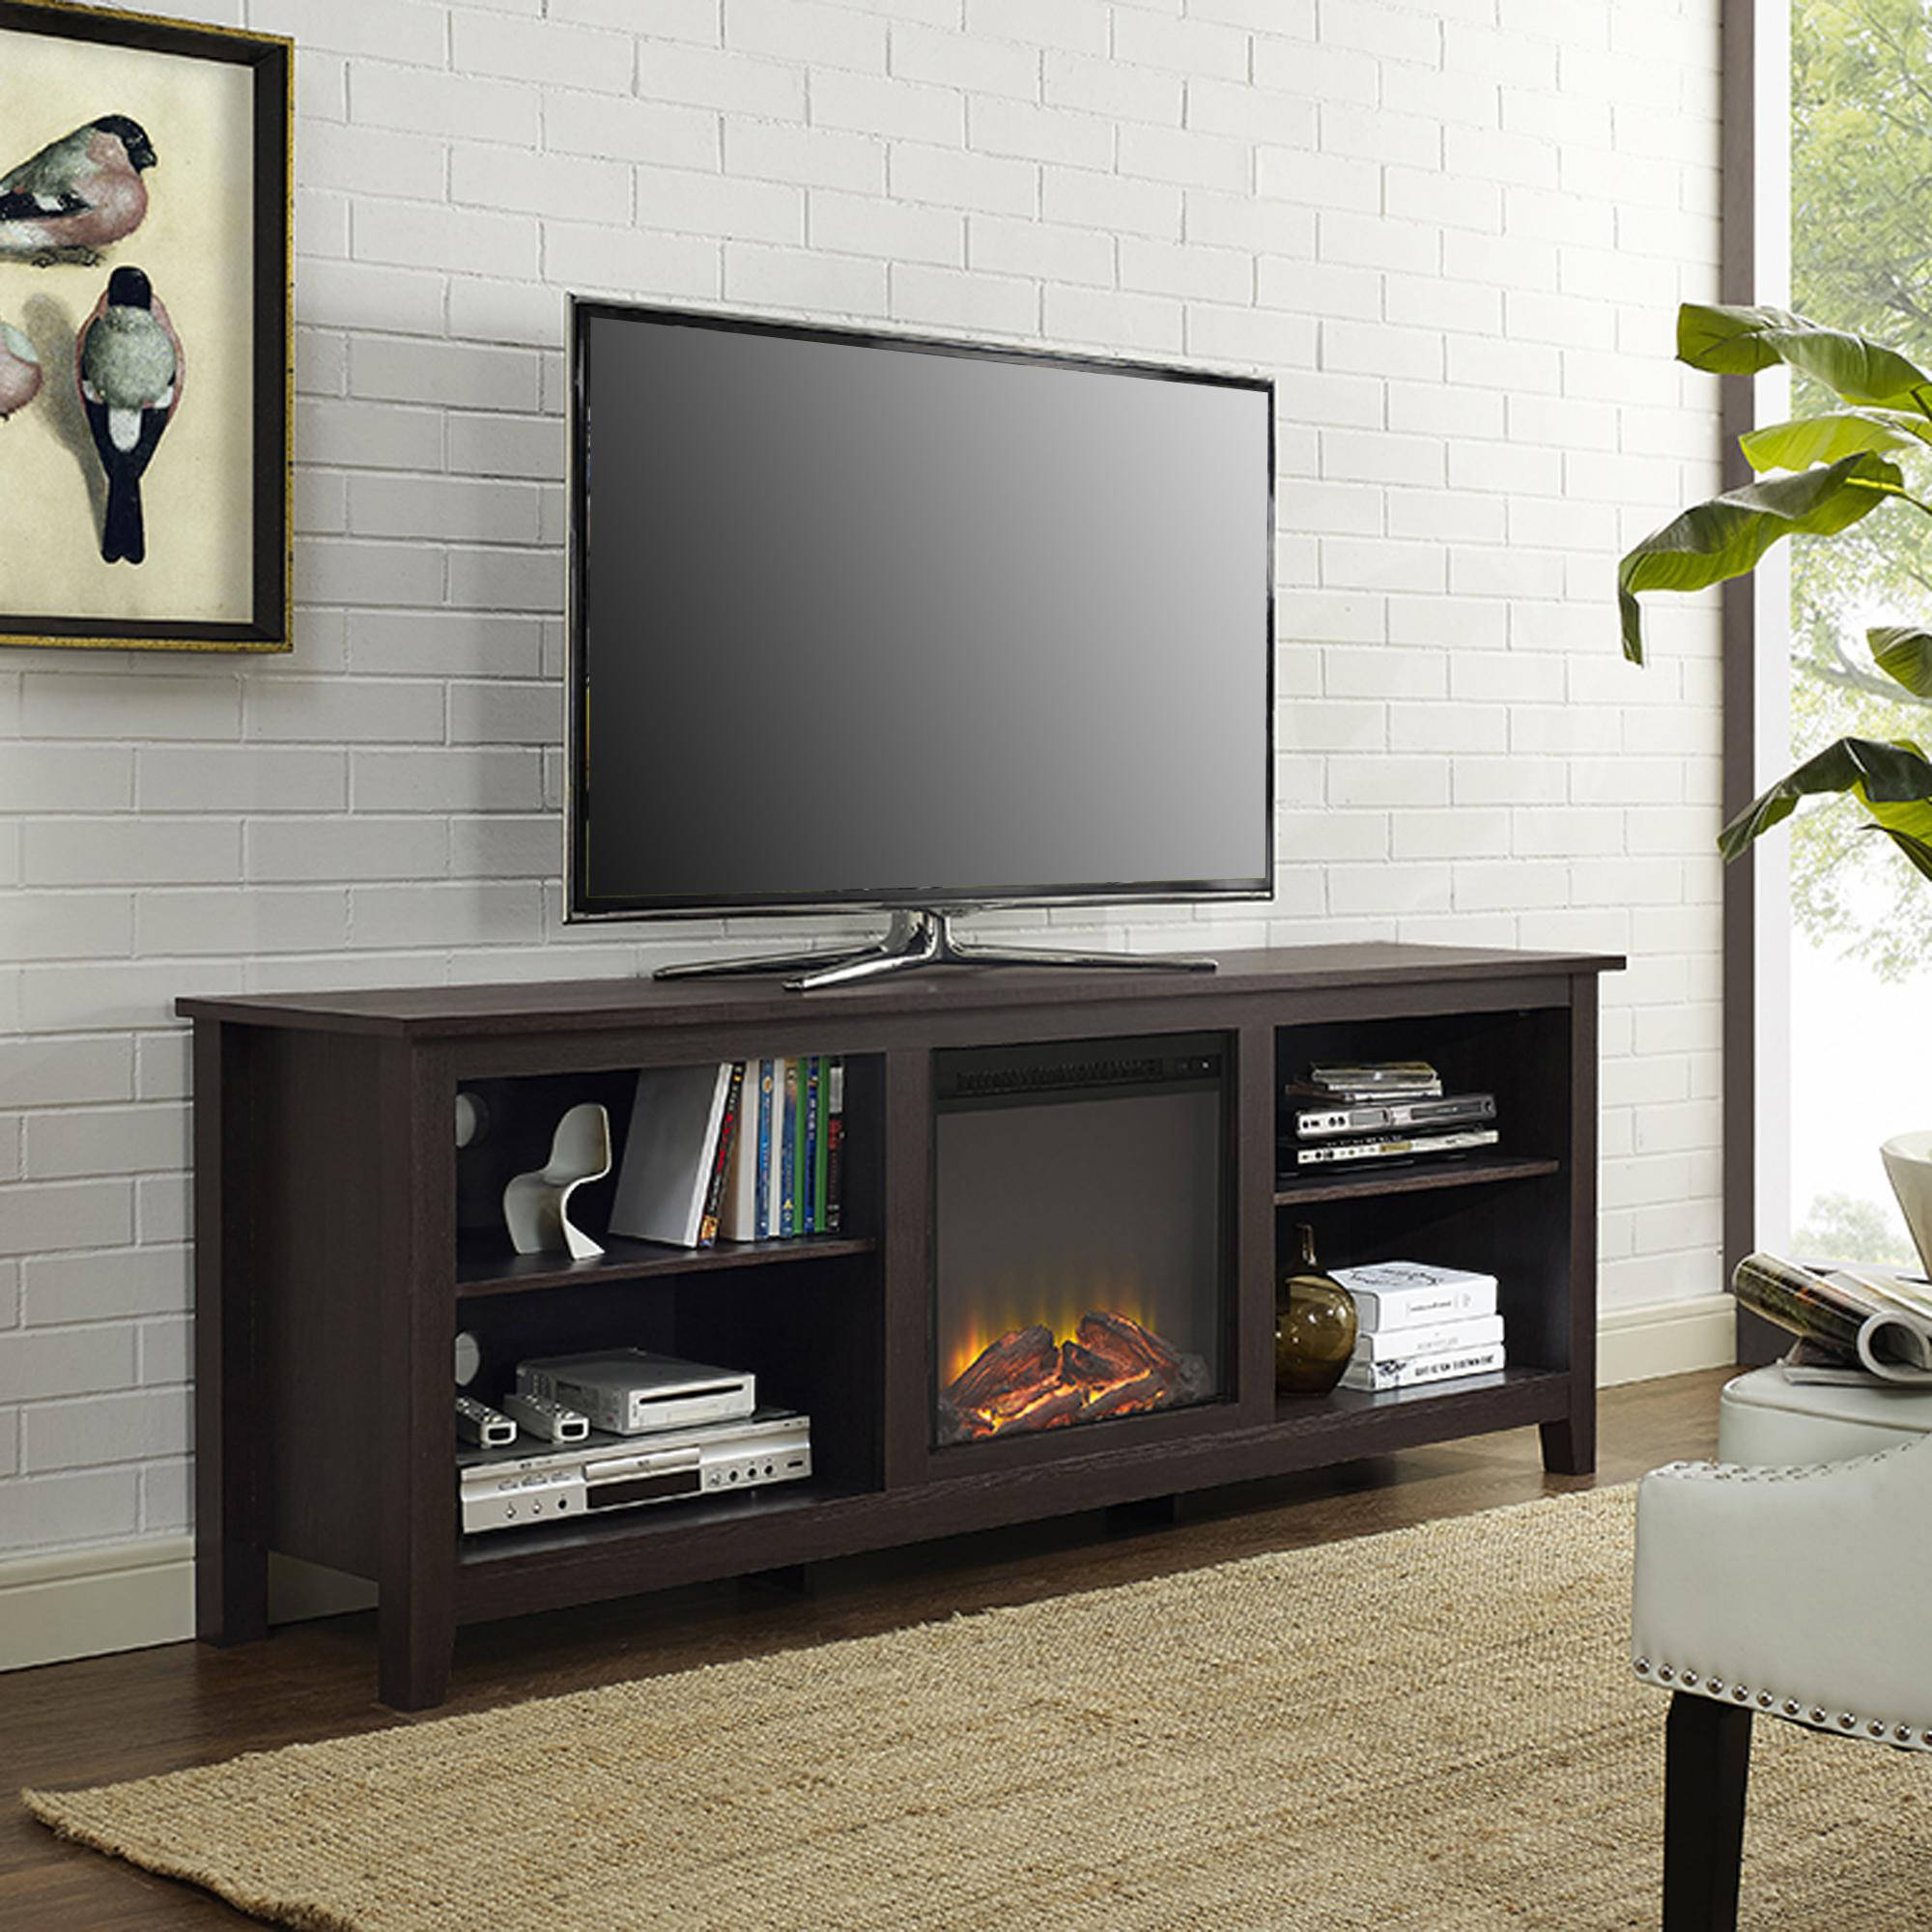 Wooden Tv Stands And Cabinets With Favorite Tv Stands & Entertainment Centers – Walmart (View 19 of 20)